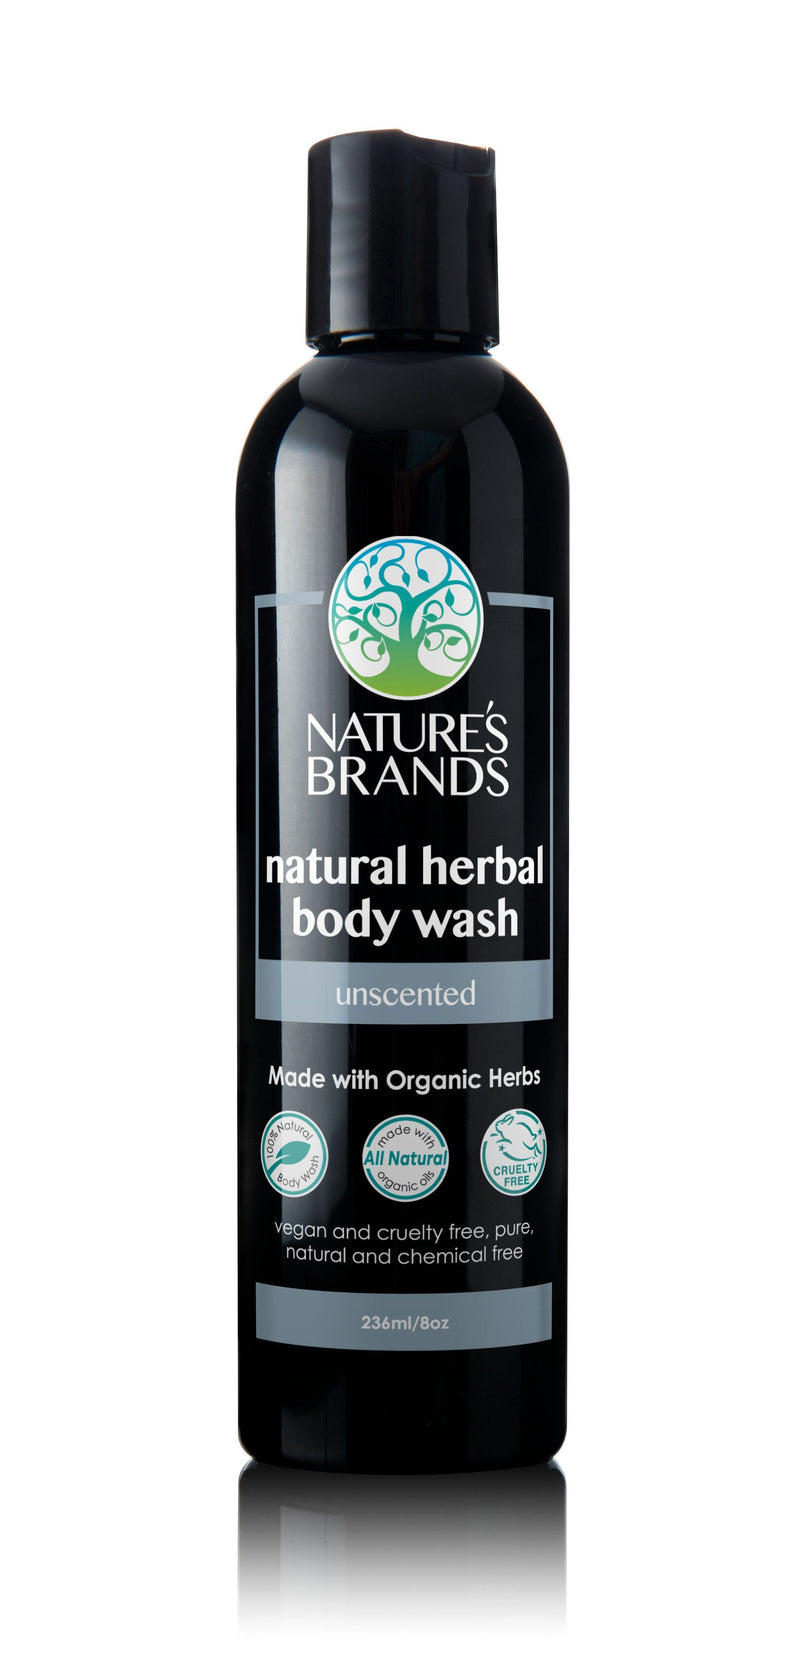 Herbal Choice Mari Organic Herbal Body Wash, Unscented - Herbal Choice Mari Organic Herbal Body Wash, Unscented - Herbal Choice Mari Organic Herbal Body Wash, Unscented